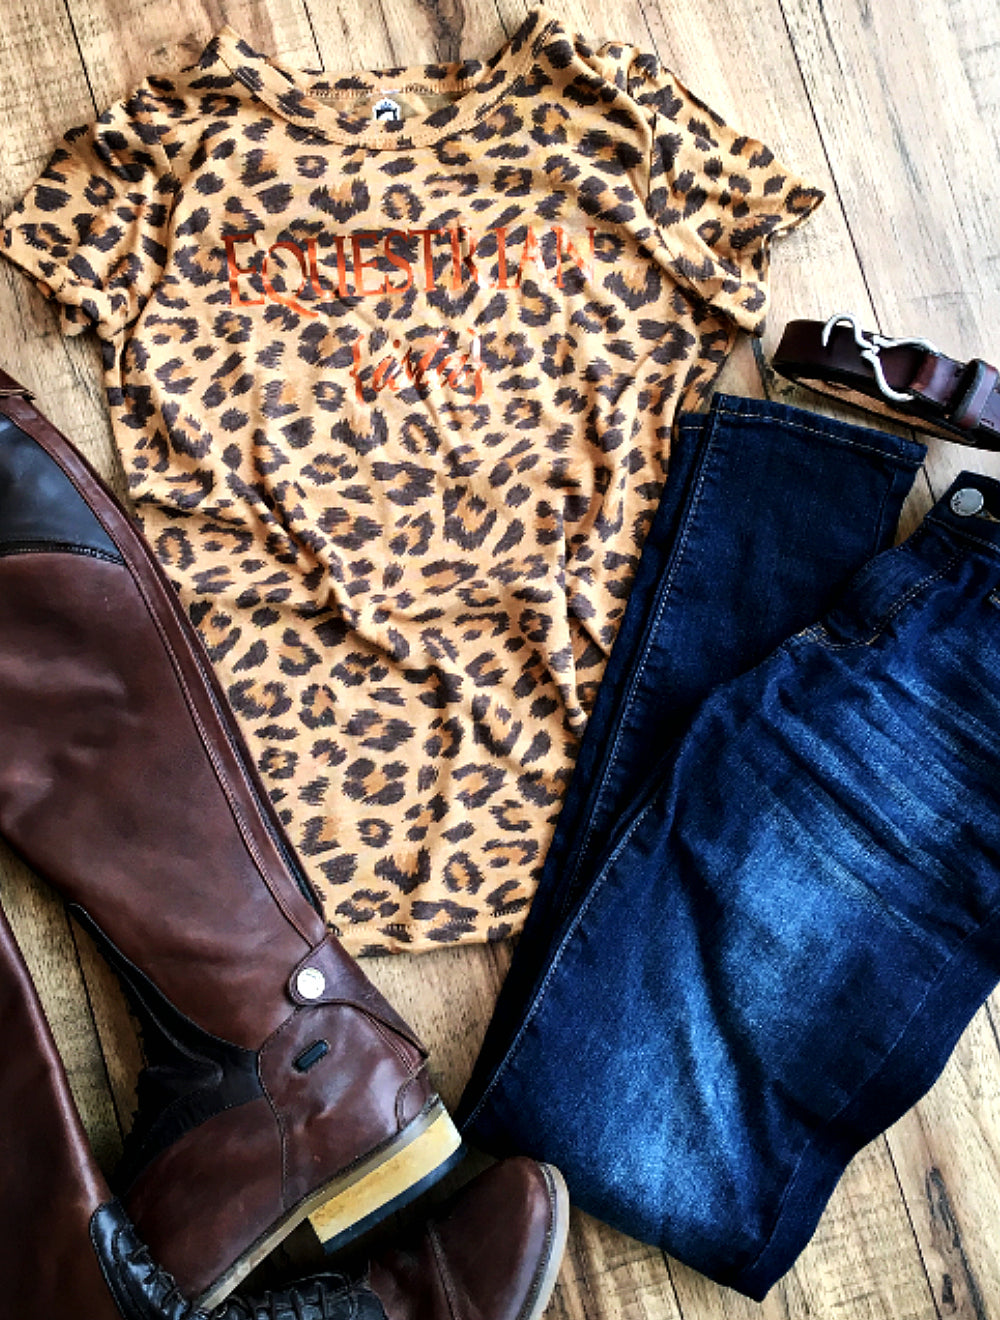 Equestrian Lifestyle Fashion Short Sleeve Leopard Print Top by Equestrianista Clothing Brand.